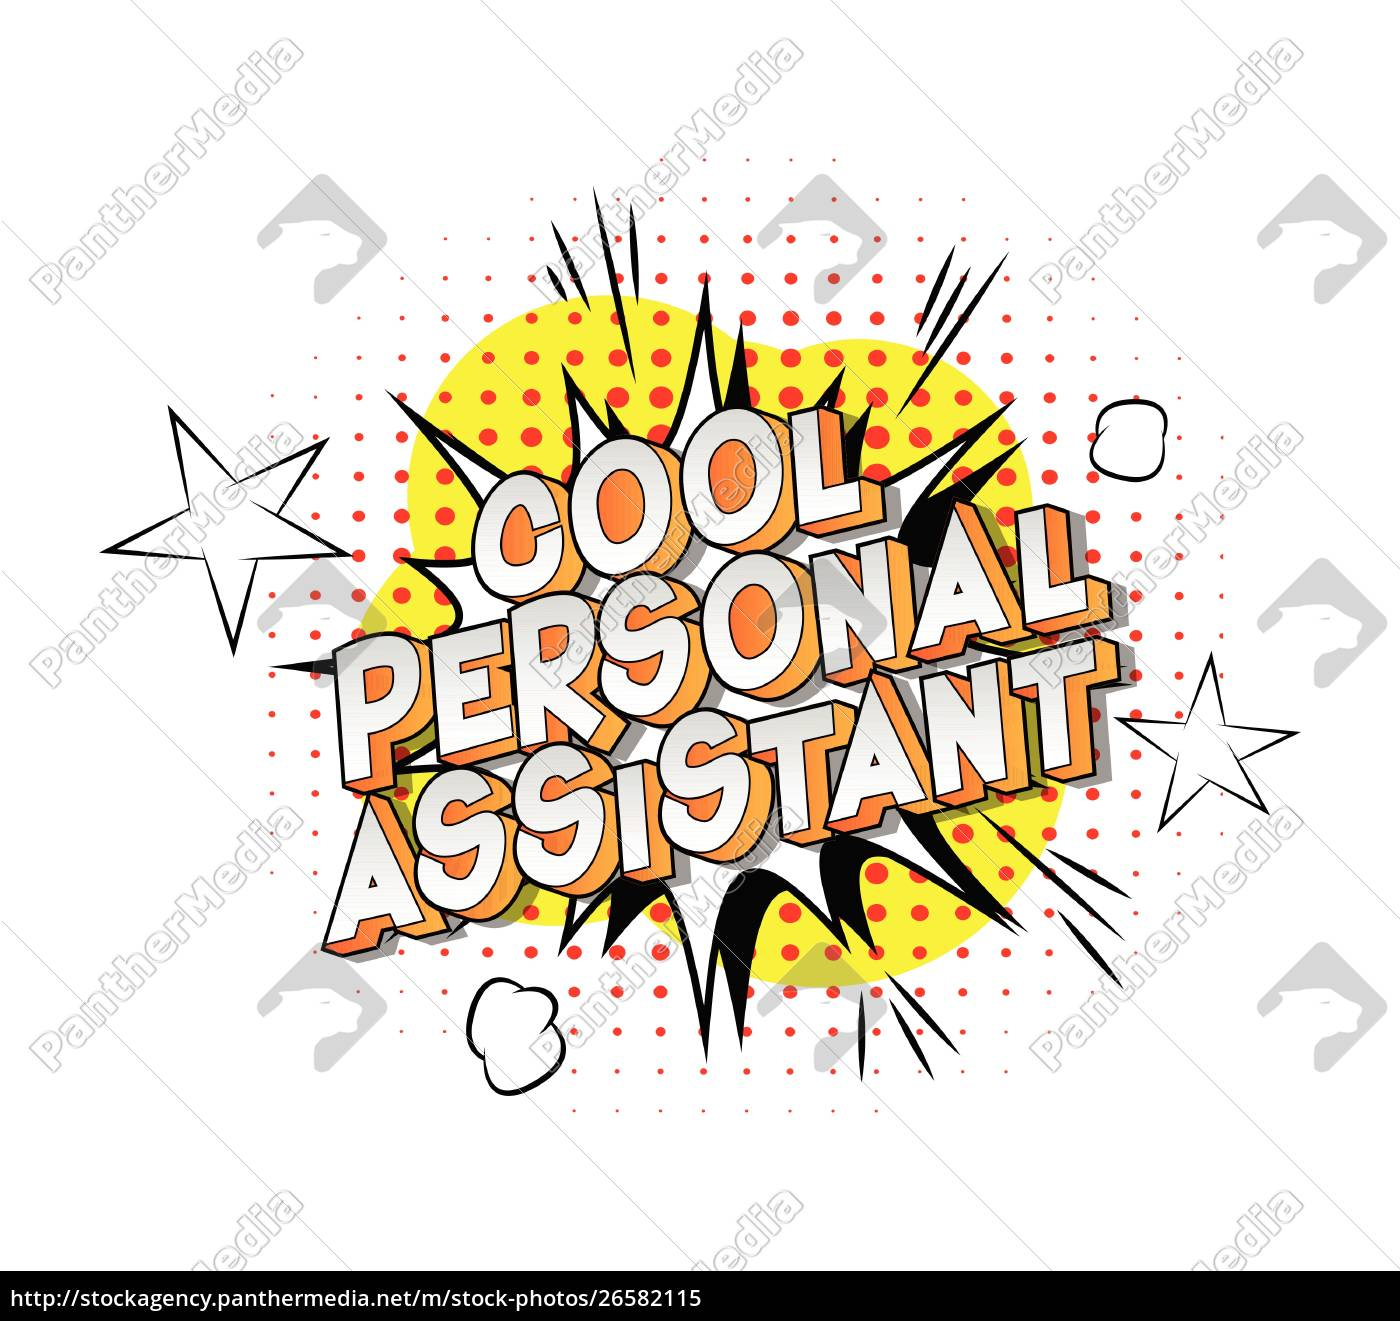 cool, personal, assistant, -, vector, illustrated - 26582115